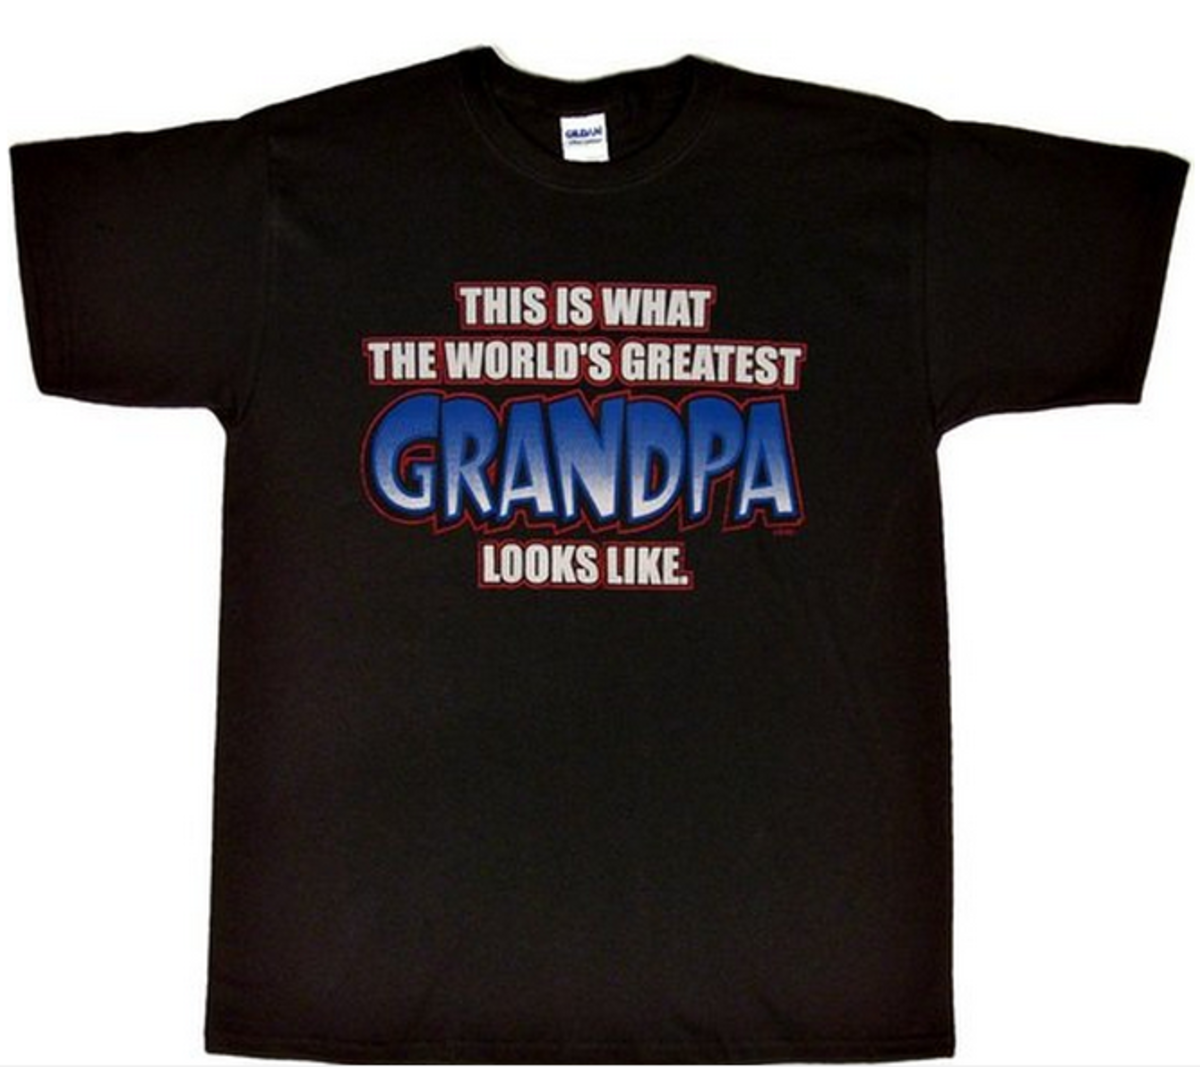 World's Greatest Grandpa Message on T Shirt